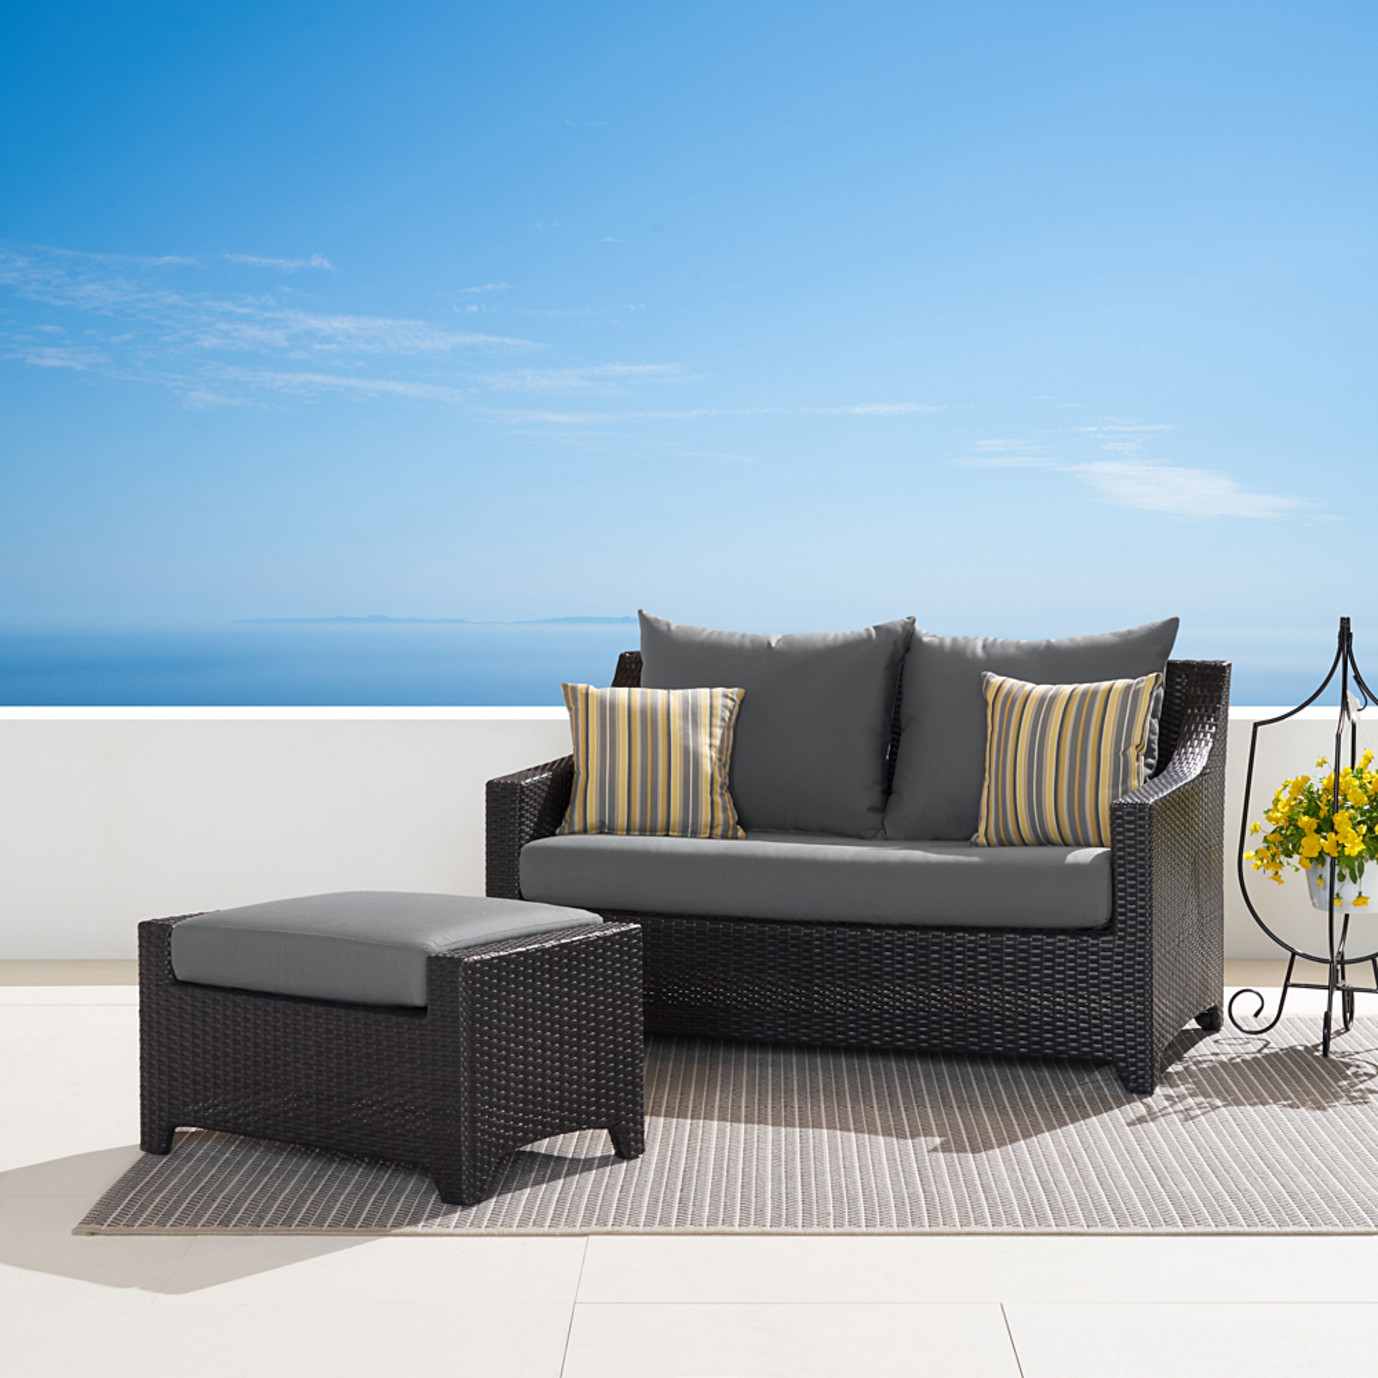 Deco™ Loveseat and Ottoman - Charcoal Grey